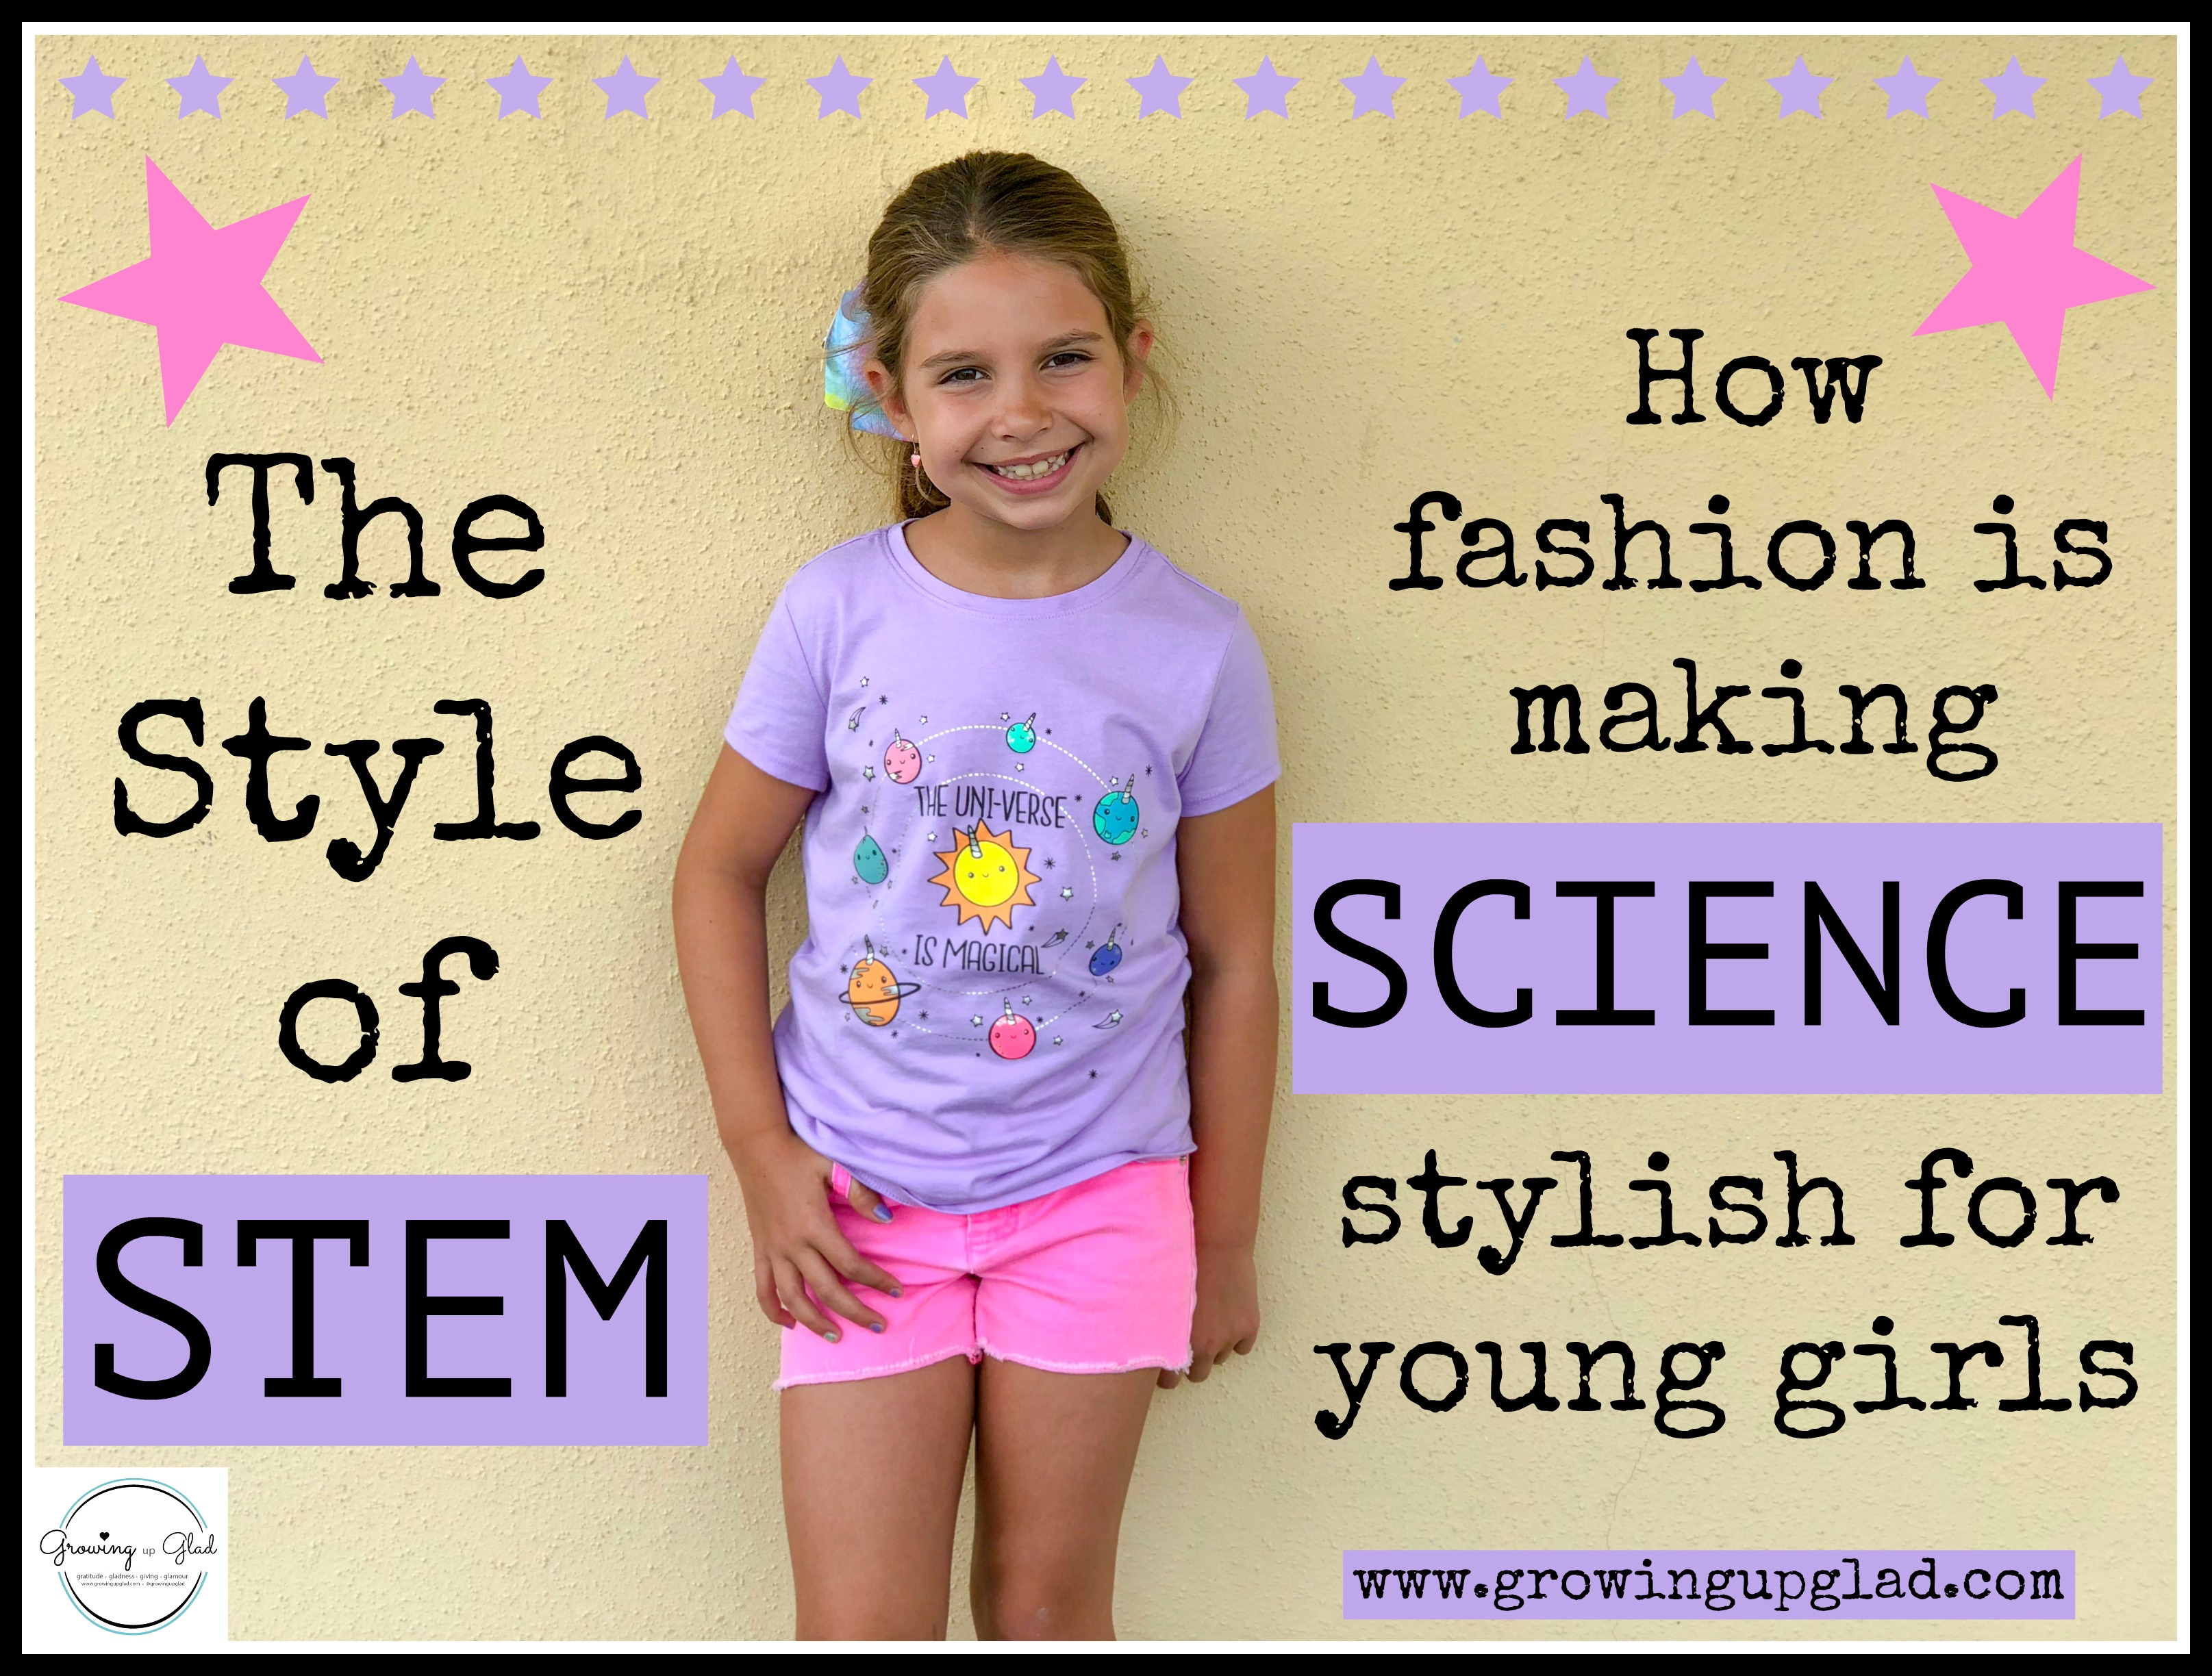 The Style Of Stem How Fashion Is Making Science Stylish For Young Girls